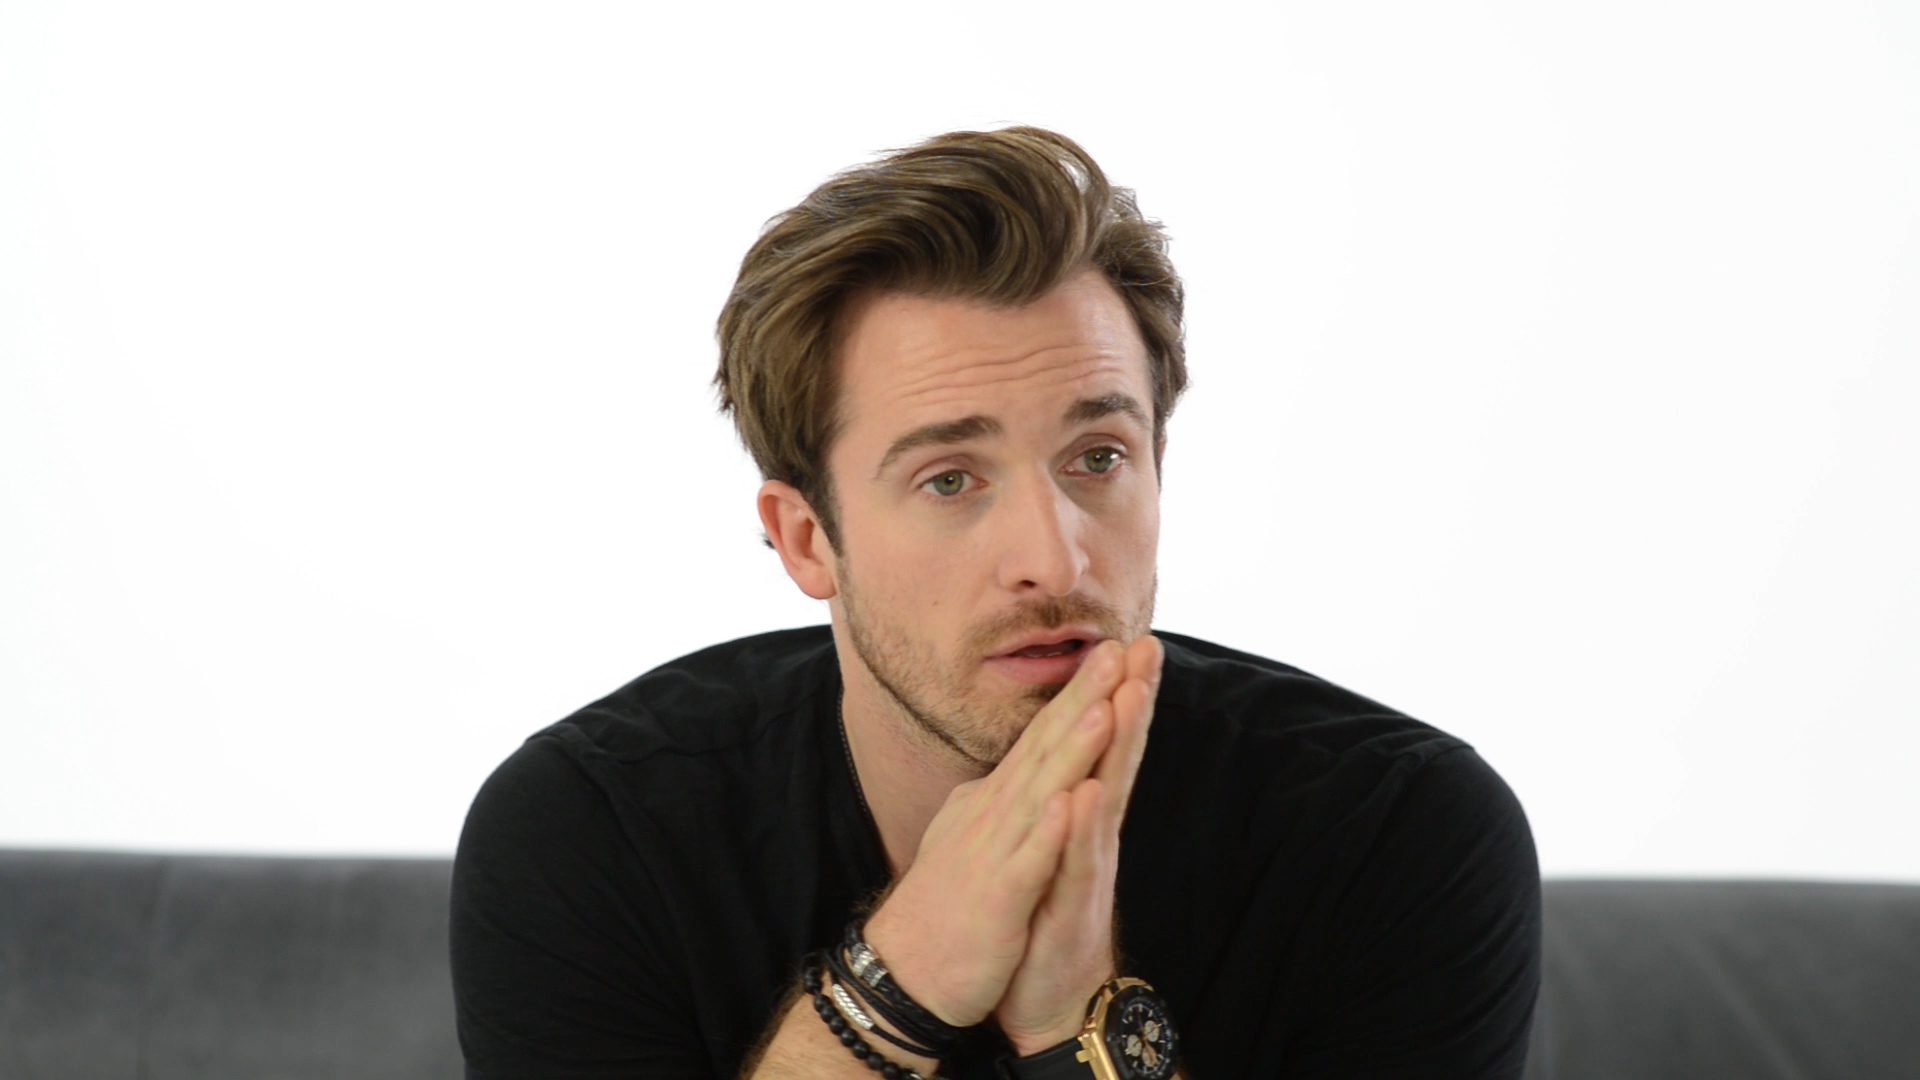 Matthew hussey advice for men